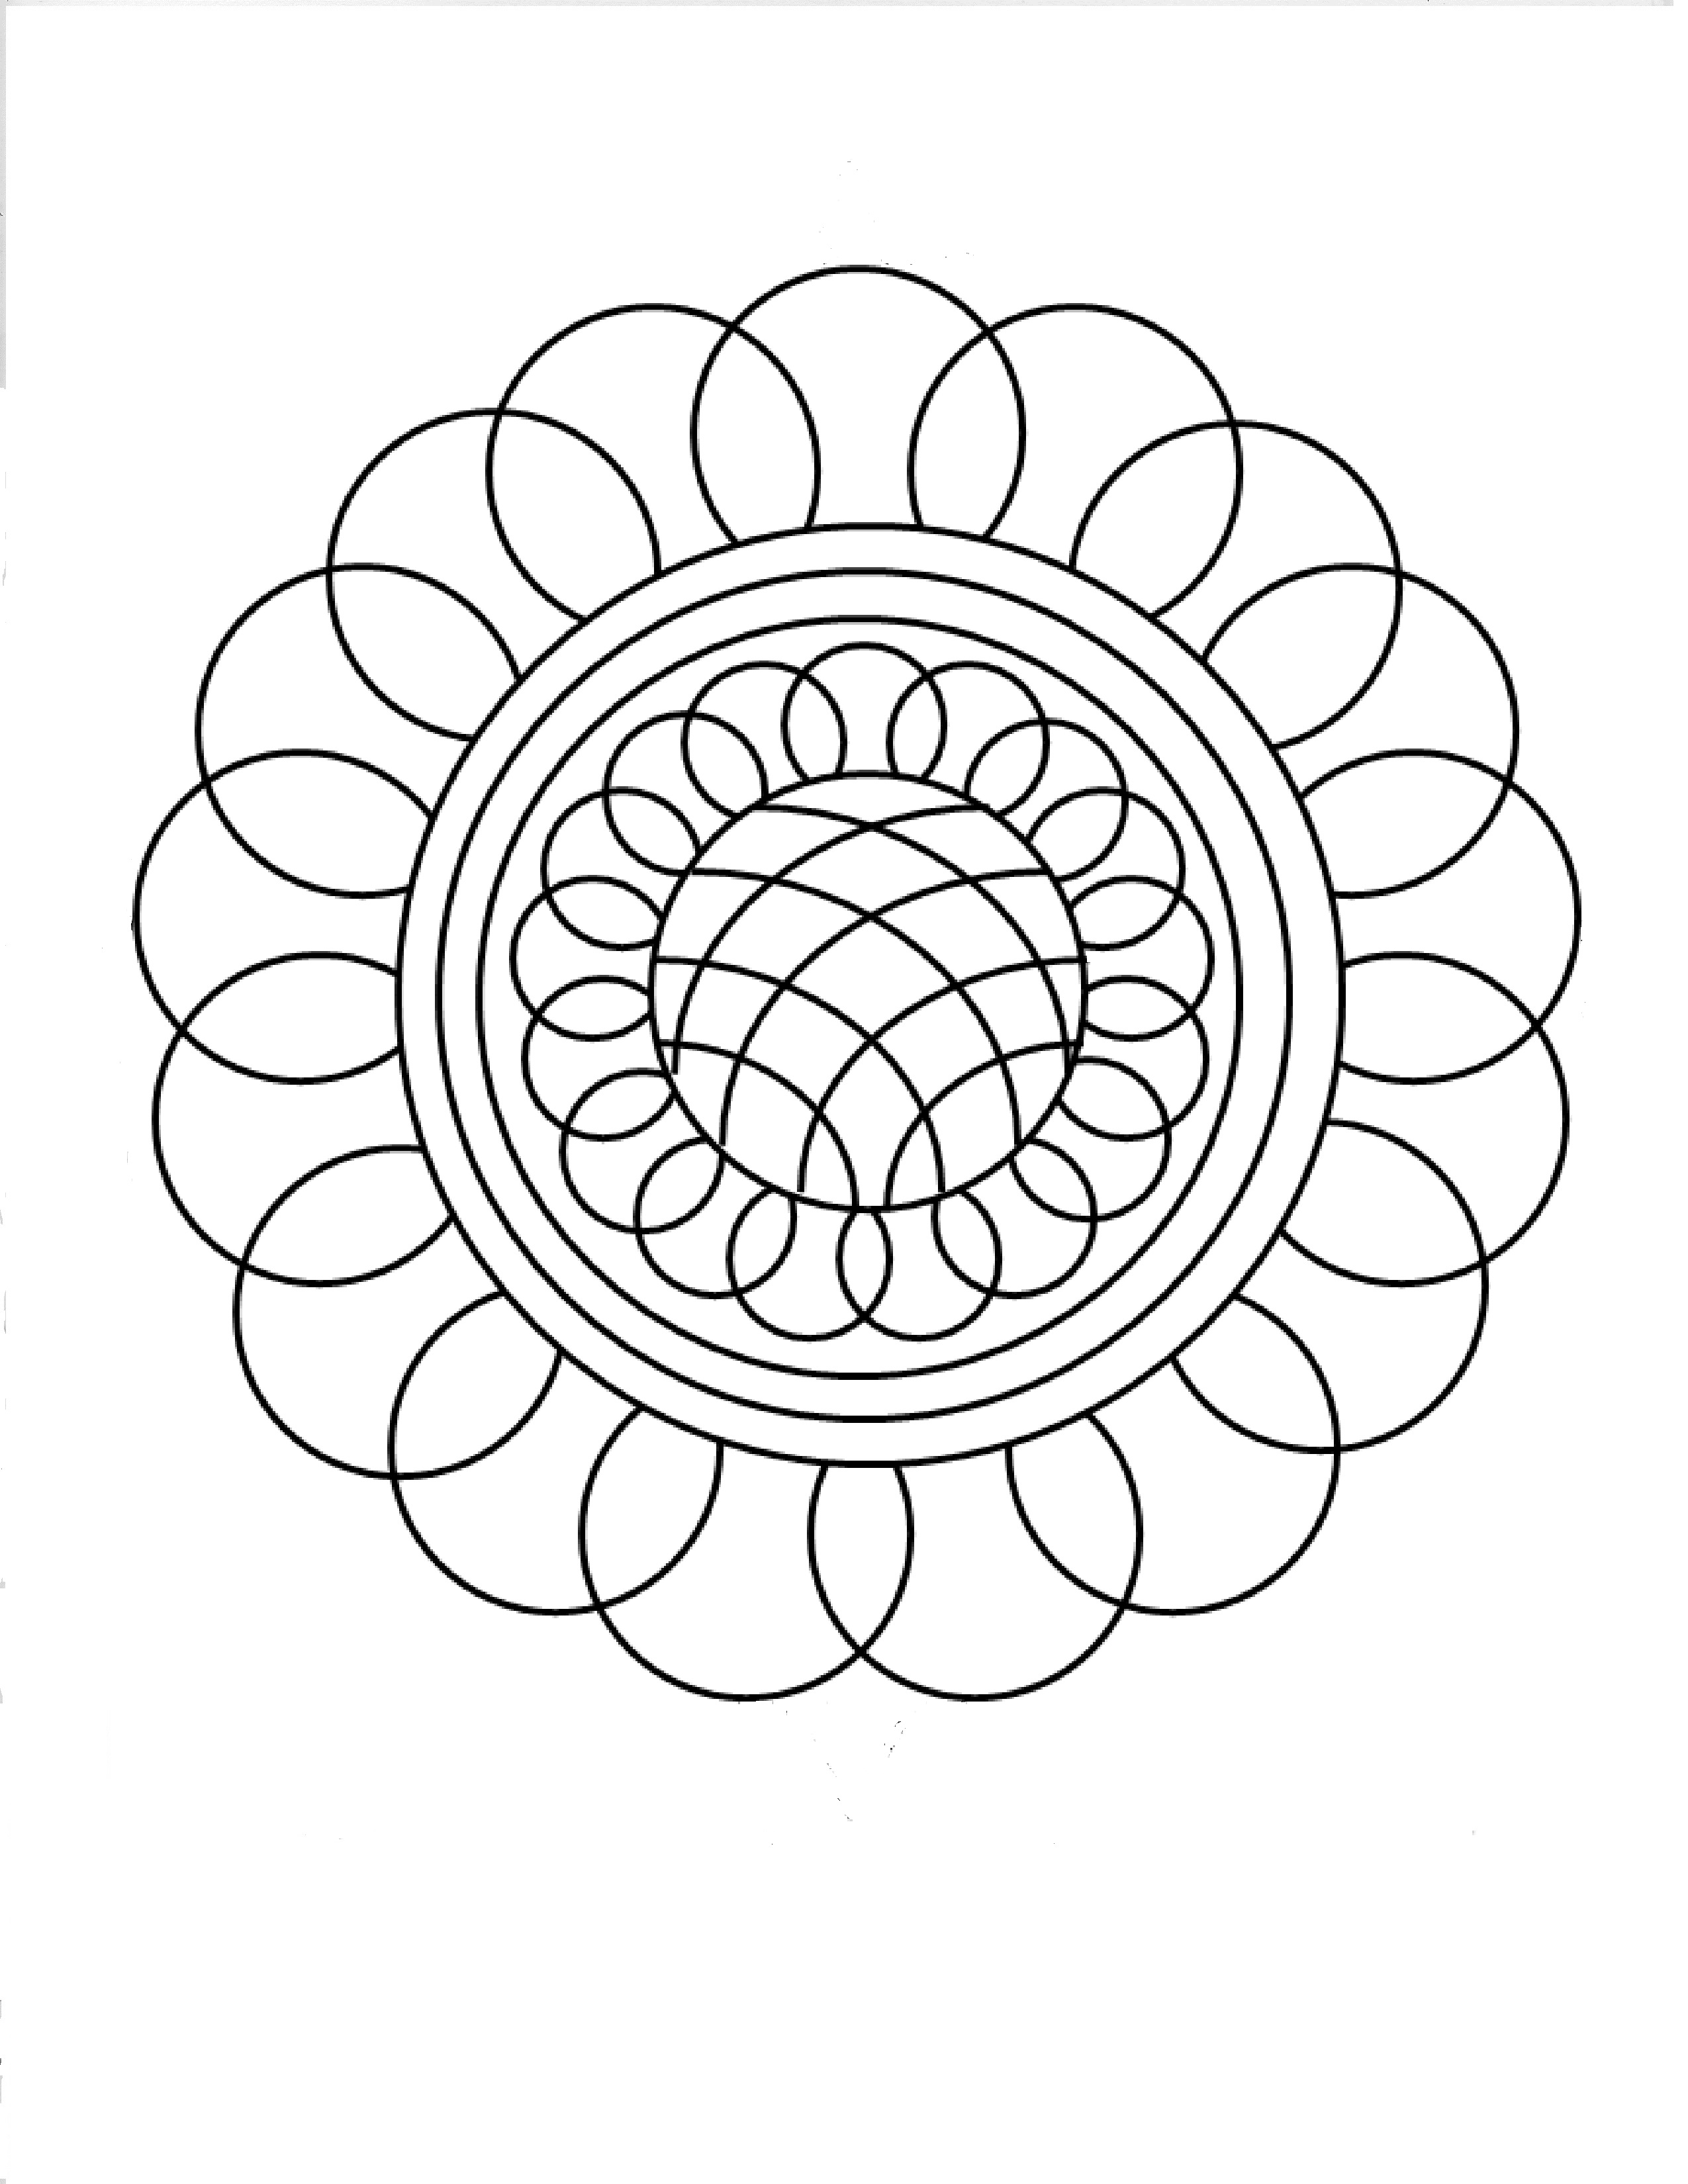 mandala adult coloring pages simple mandala coloring pages for adults free printable coloring mandala adult pages